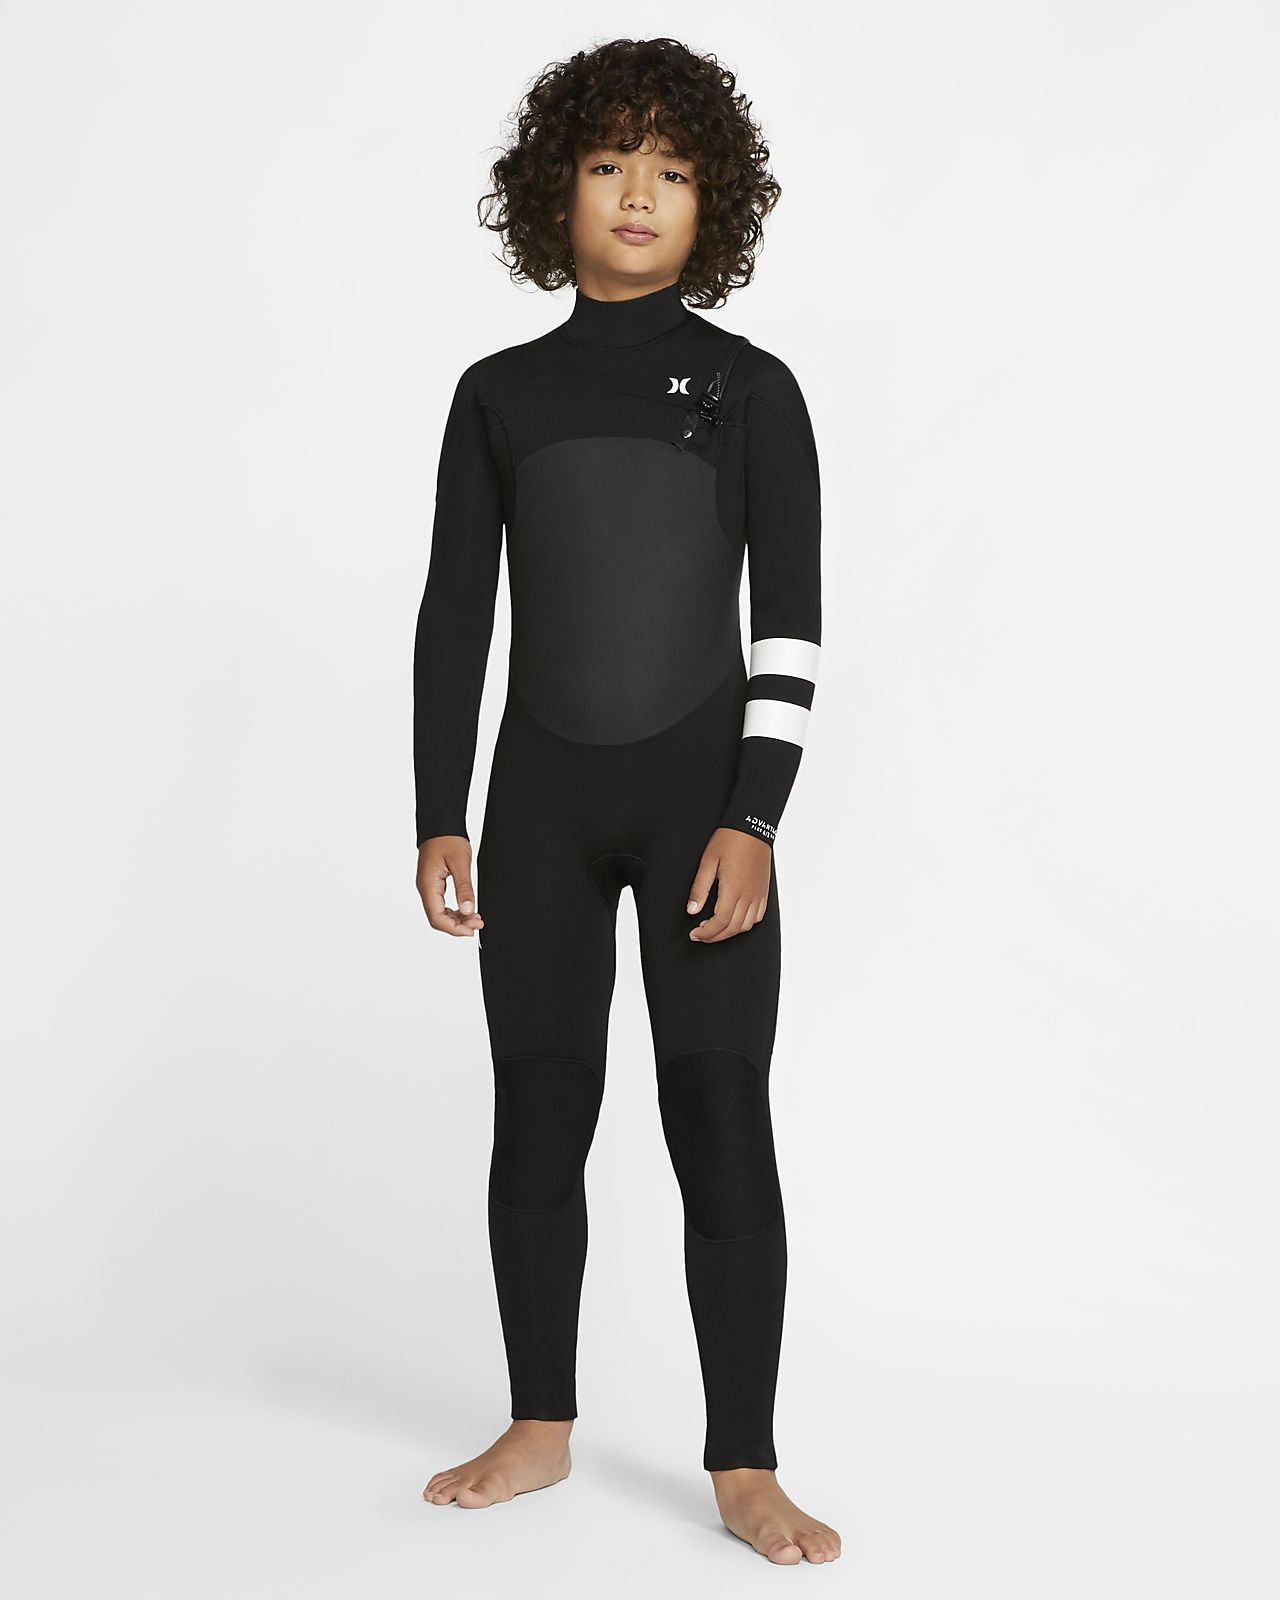 Hurley Advantage Plus 4/3 mm Fullsuit Neoprè - Nen/a